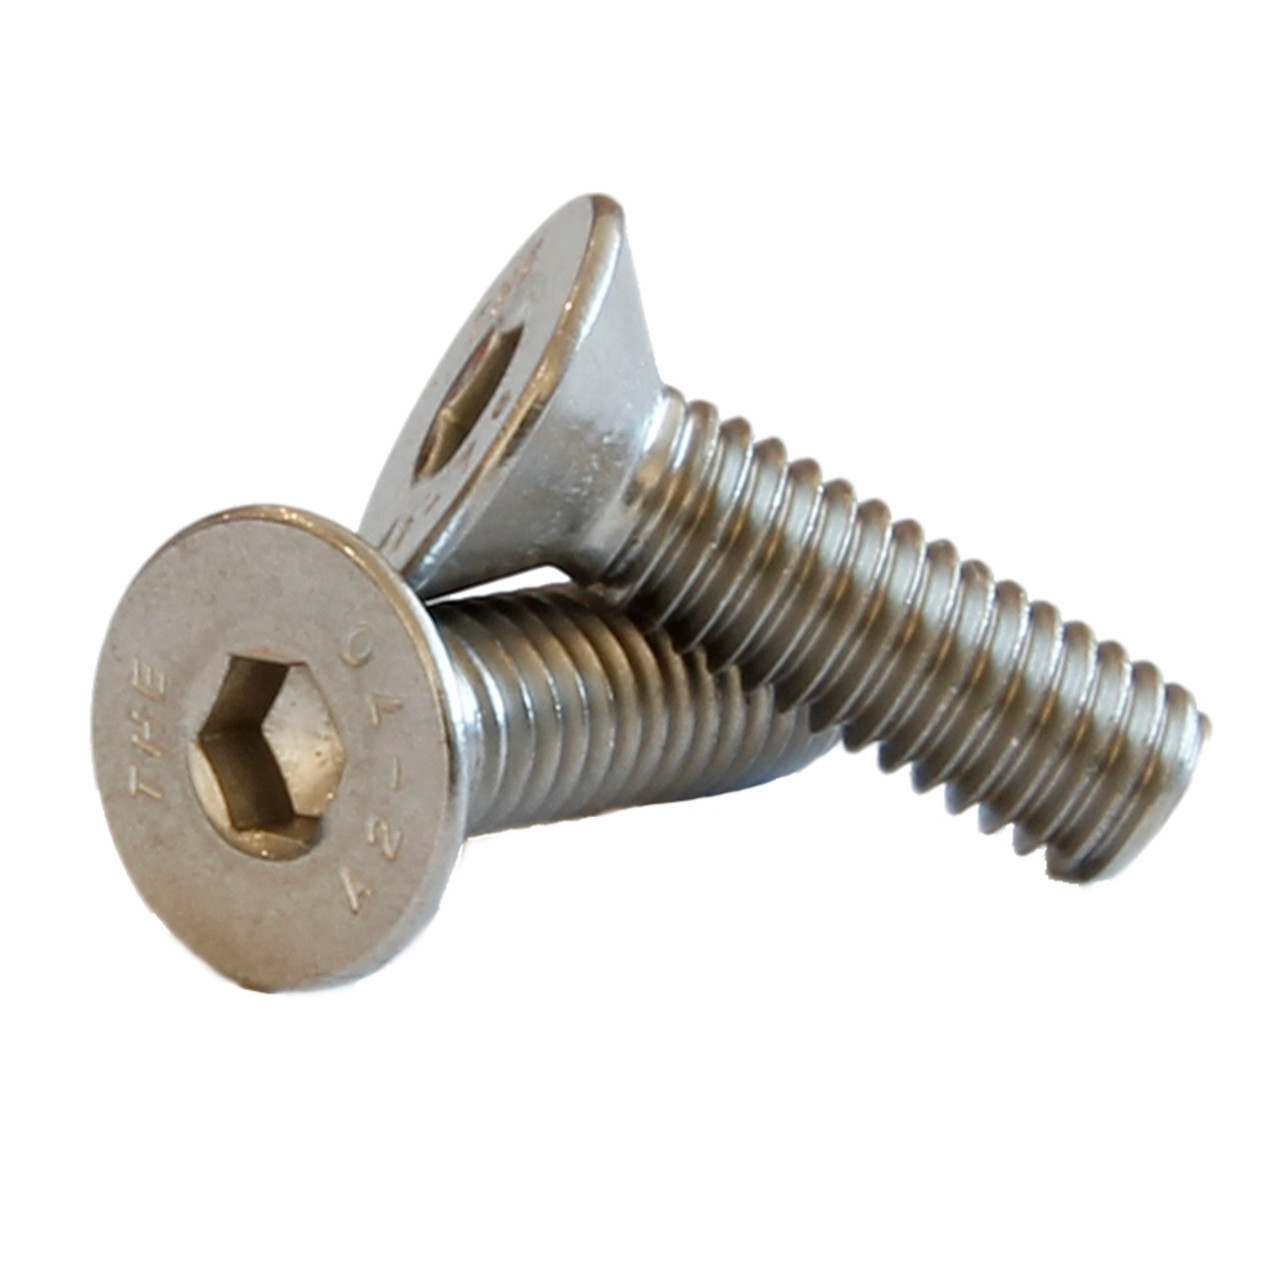 Csk Socket Stainless (304) : M6 (1.00mm) x 12mm